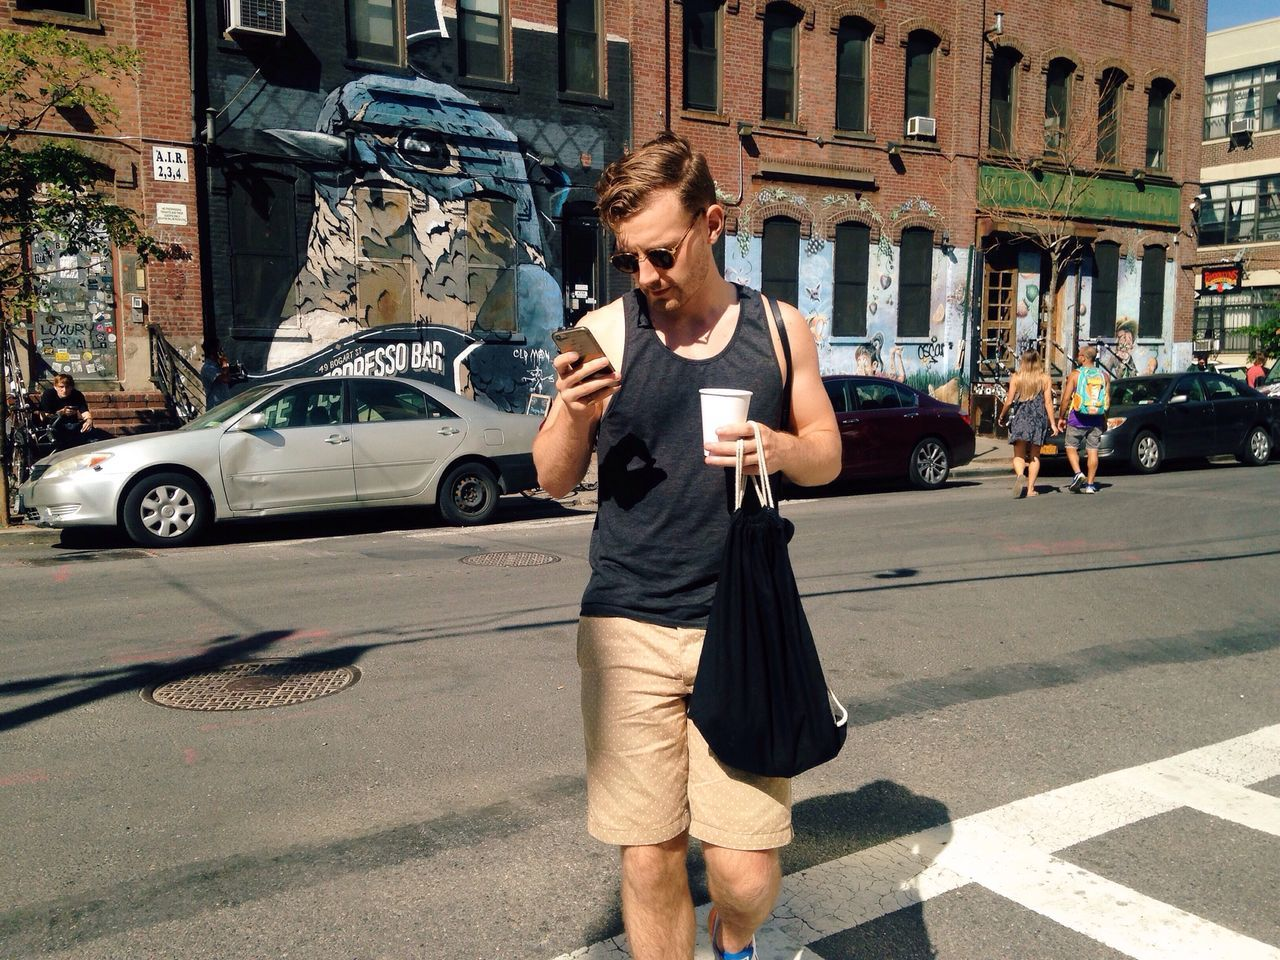 Young man using smart phone while carrying bag and coffee cup on street